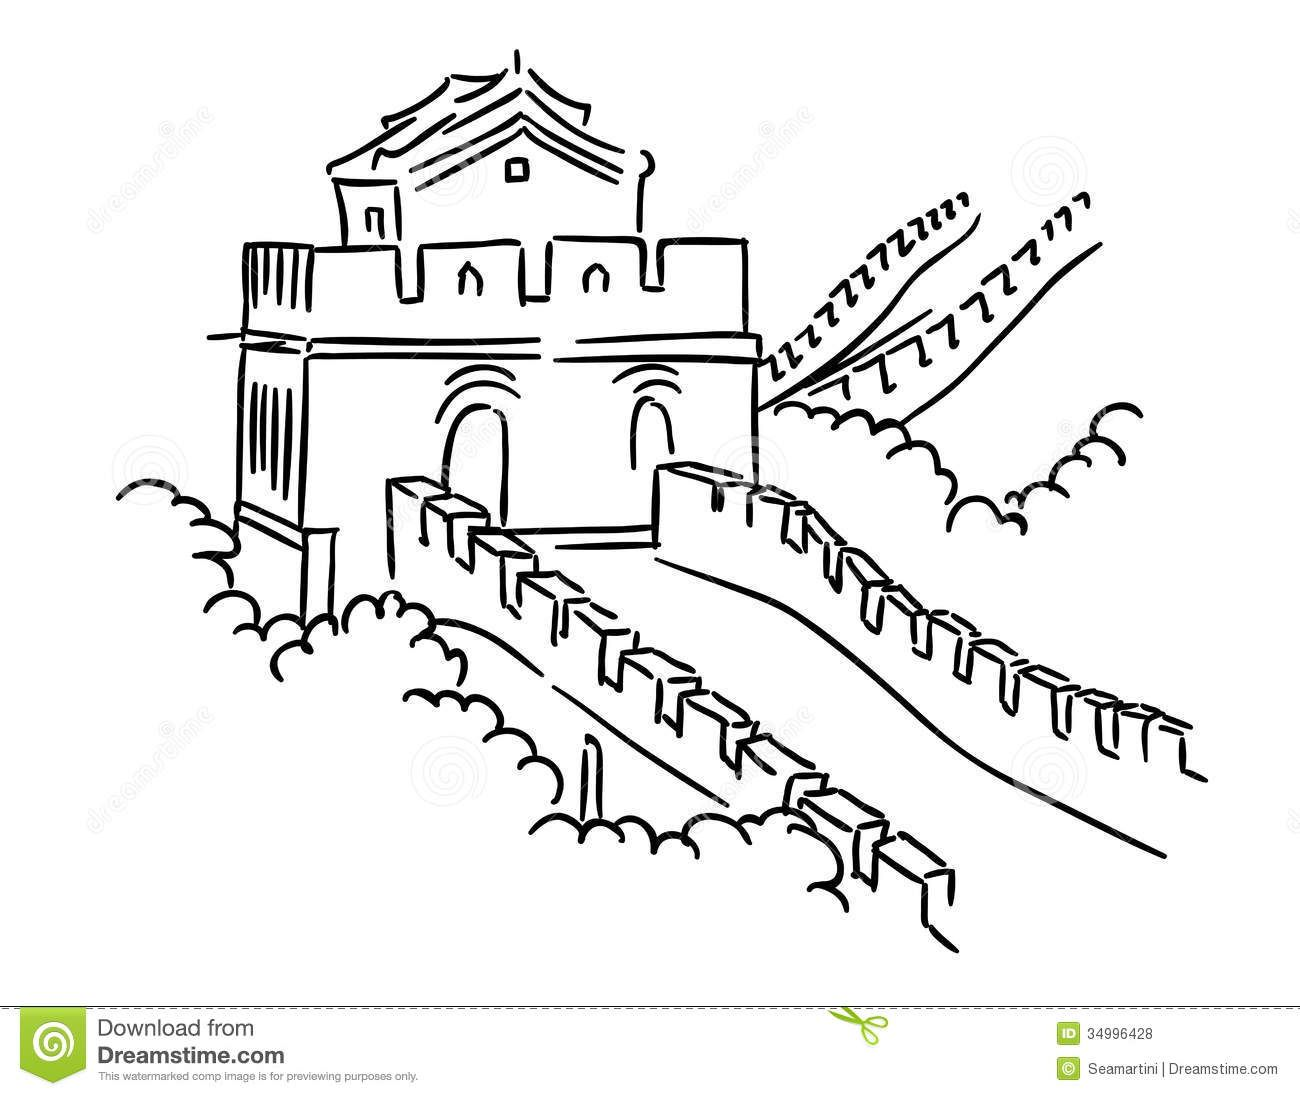 Clipart Wallpaper Blink Great Wall Of China Clipart Cartoon 26 1300 X 1096 For Android Windows Mac And Xbo Wall Drawing Easy Drawings Great Wall Of China